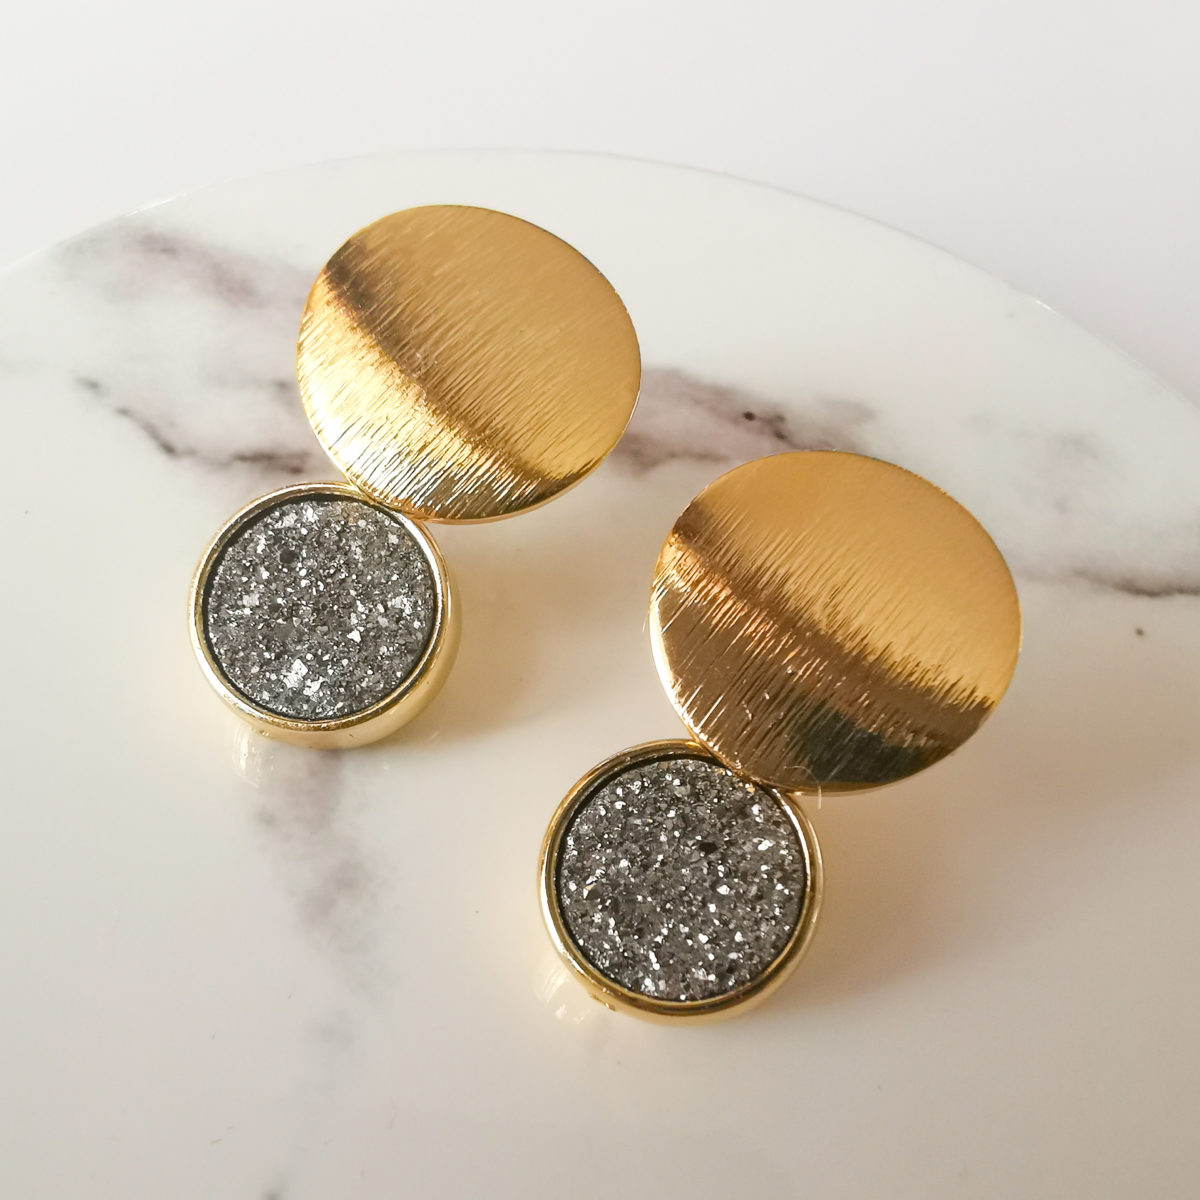 18k gold earrings with grey druzy charm